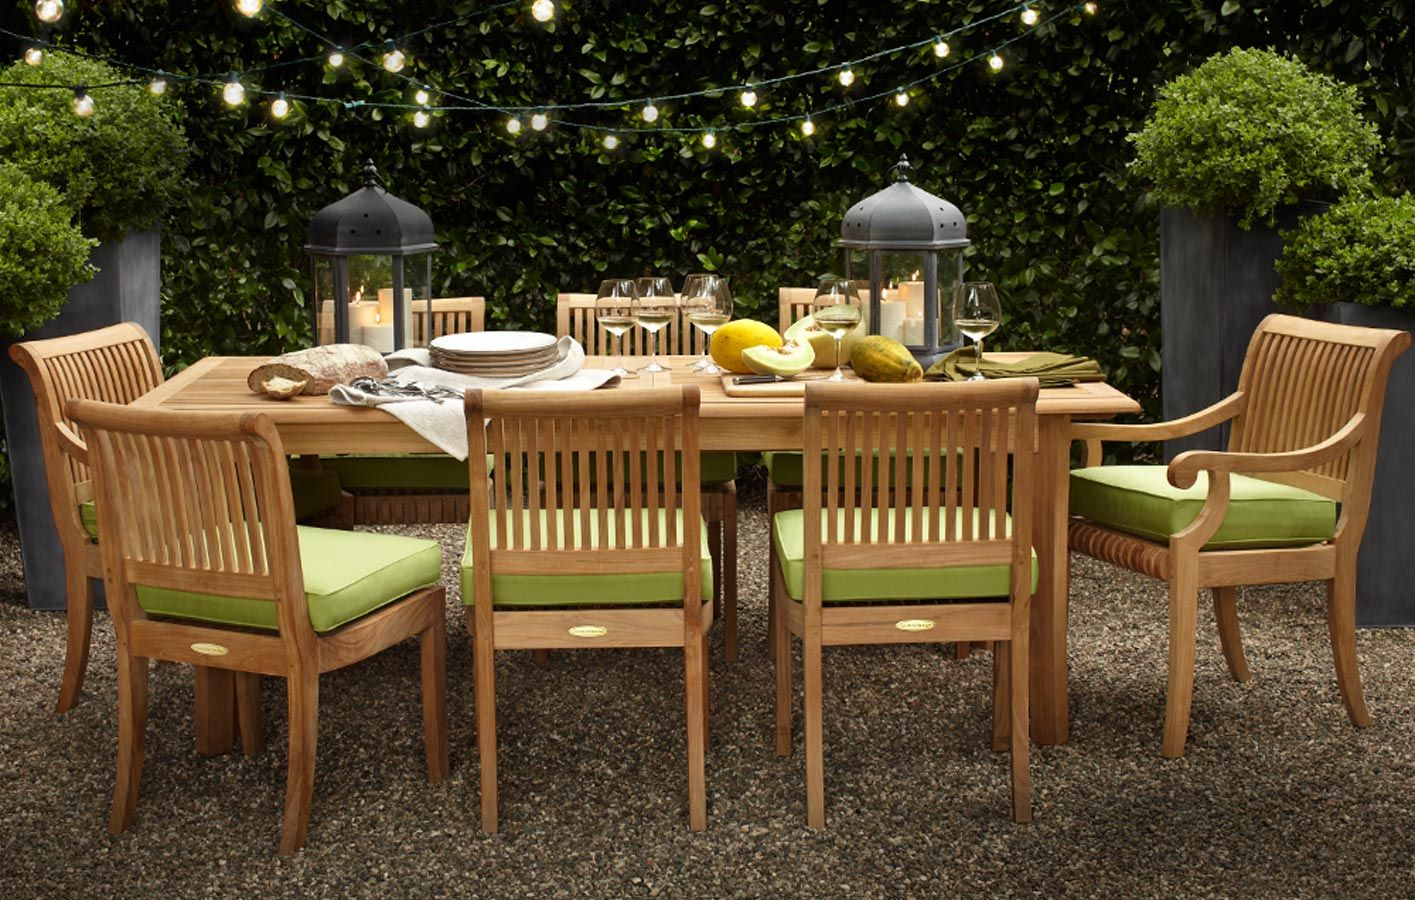 Full page image showing Smith & Hawken Avignon Teak table and chairs set up  outside. - Full Page Image Showing Smith & Hawken Avignon Teak Table And Chairs